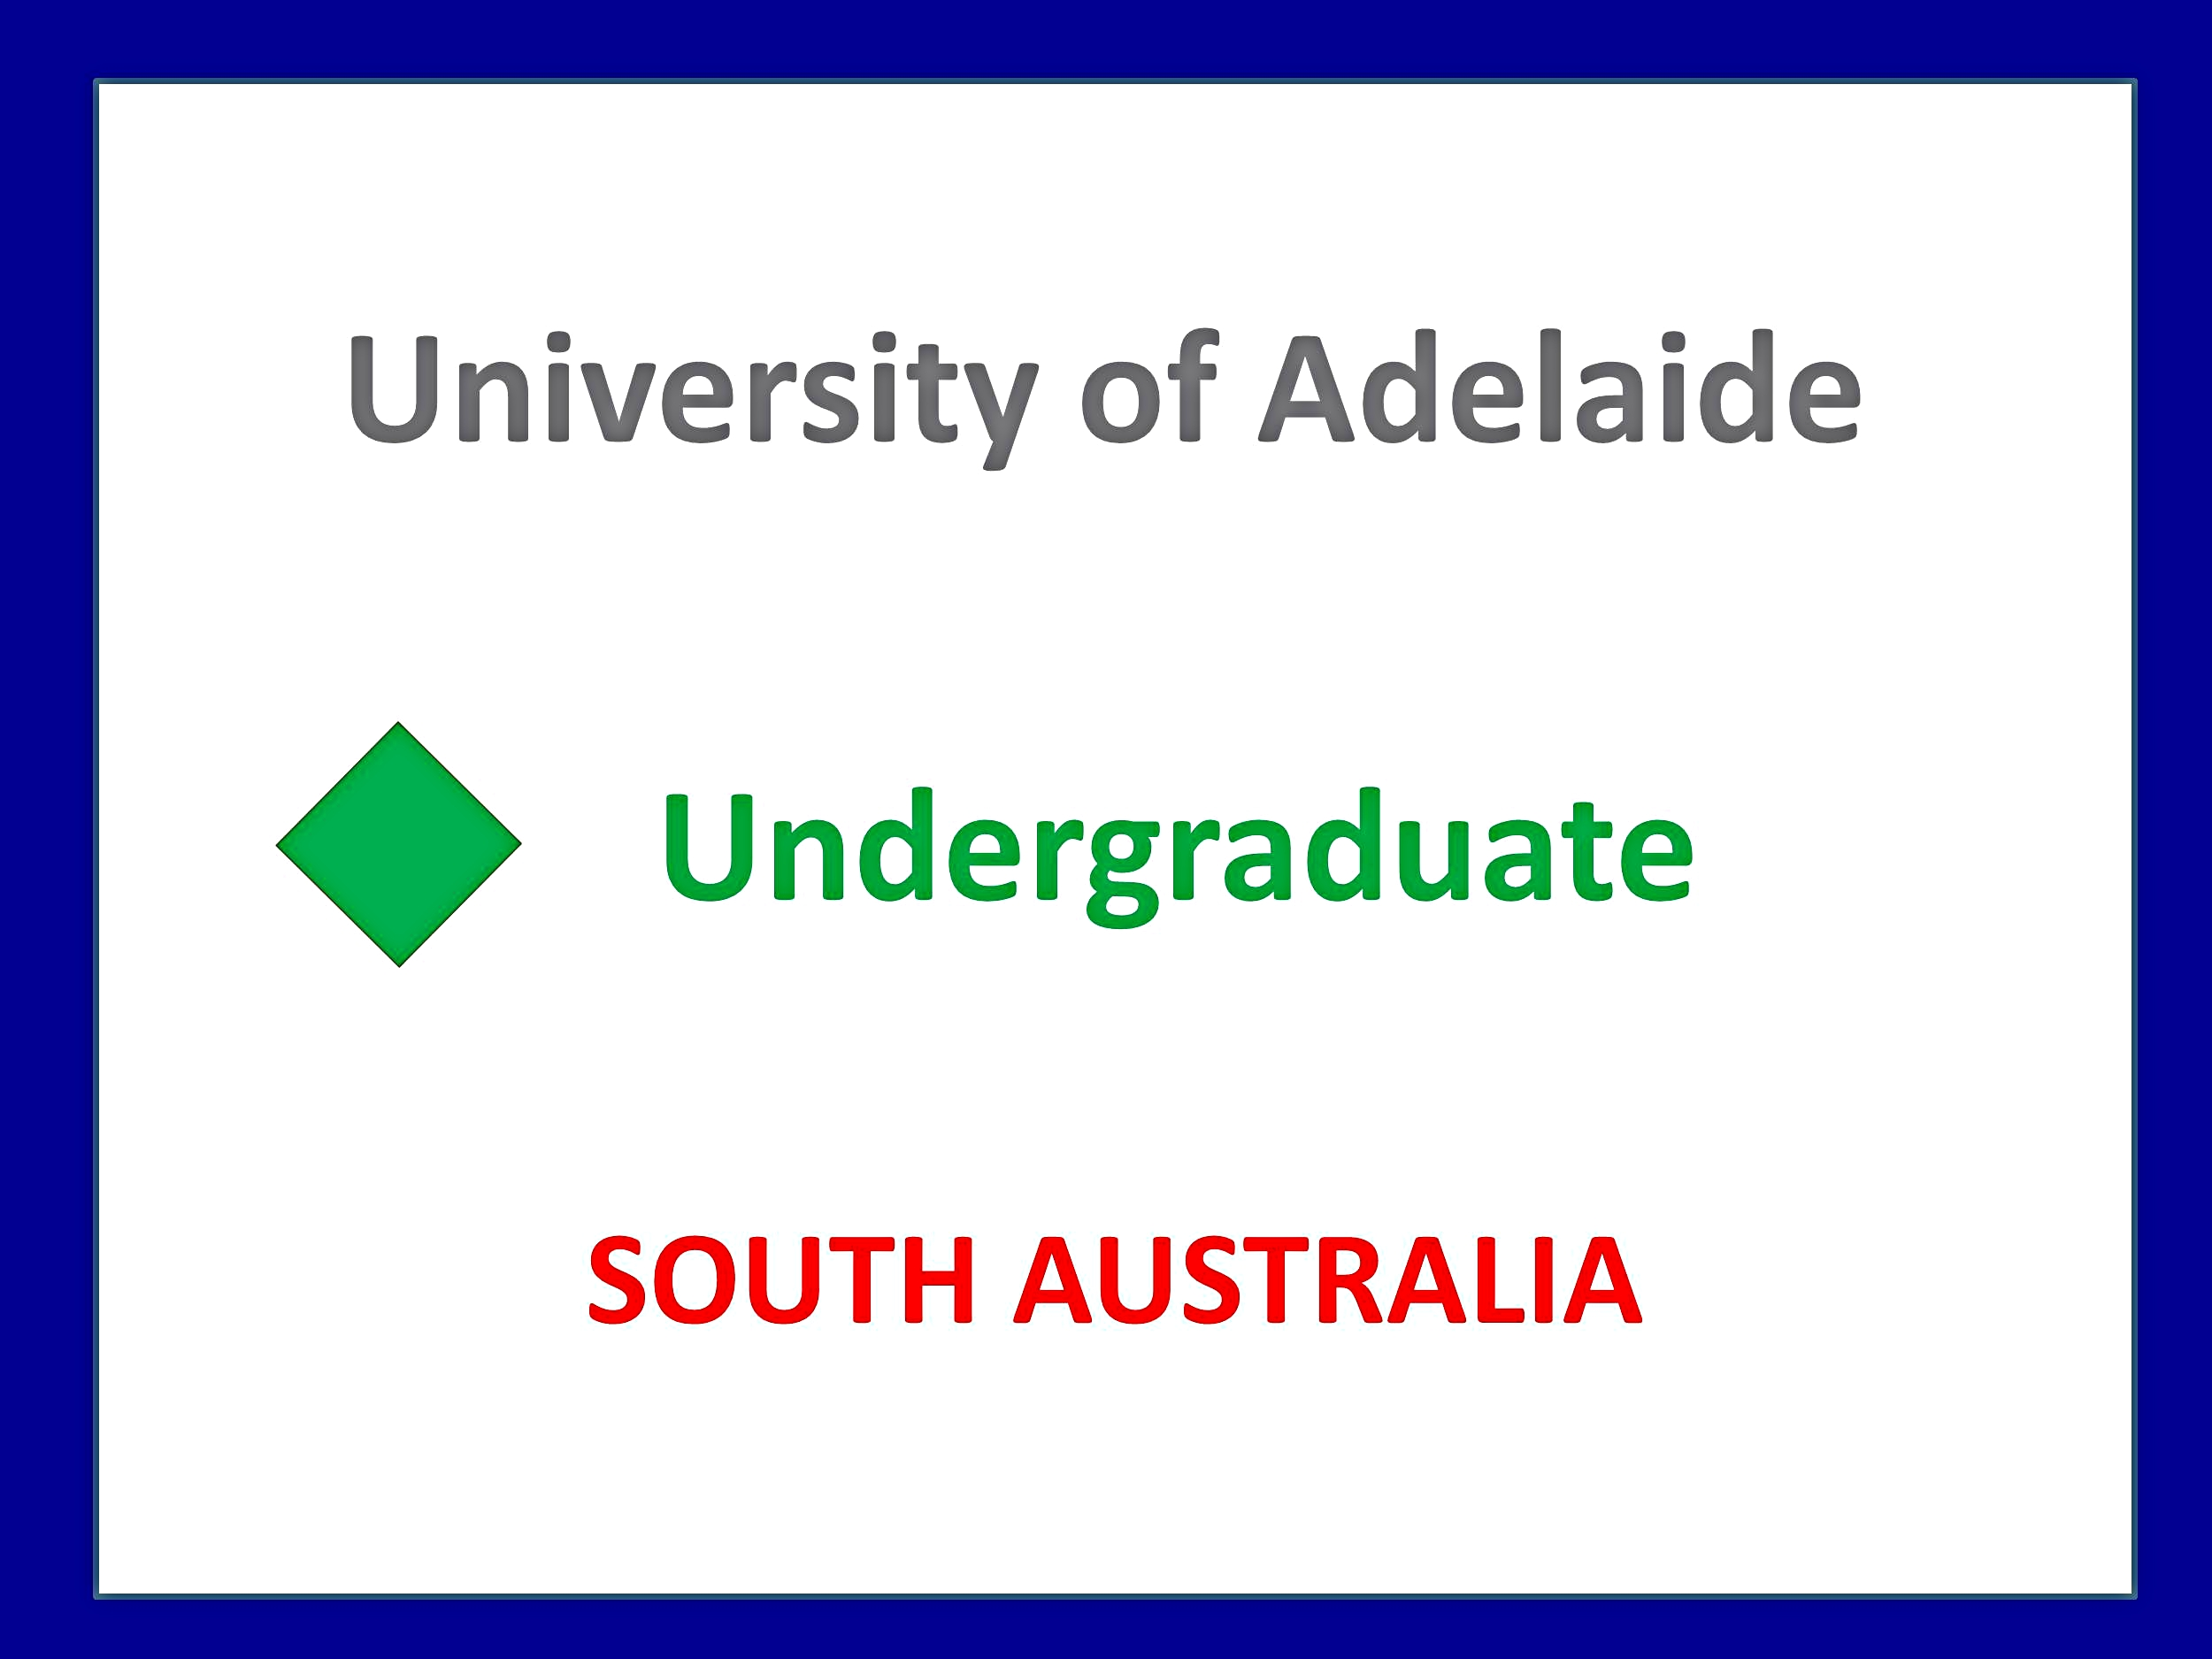 University of adelaide medicine.jpg